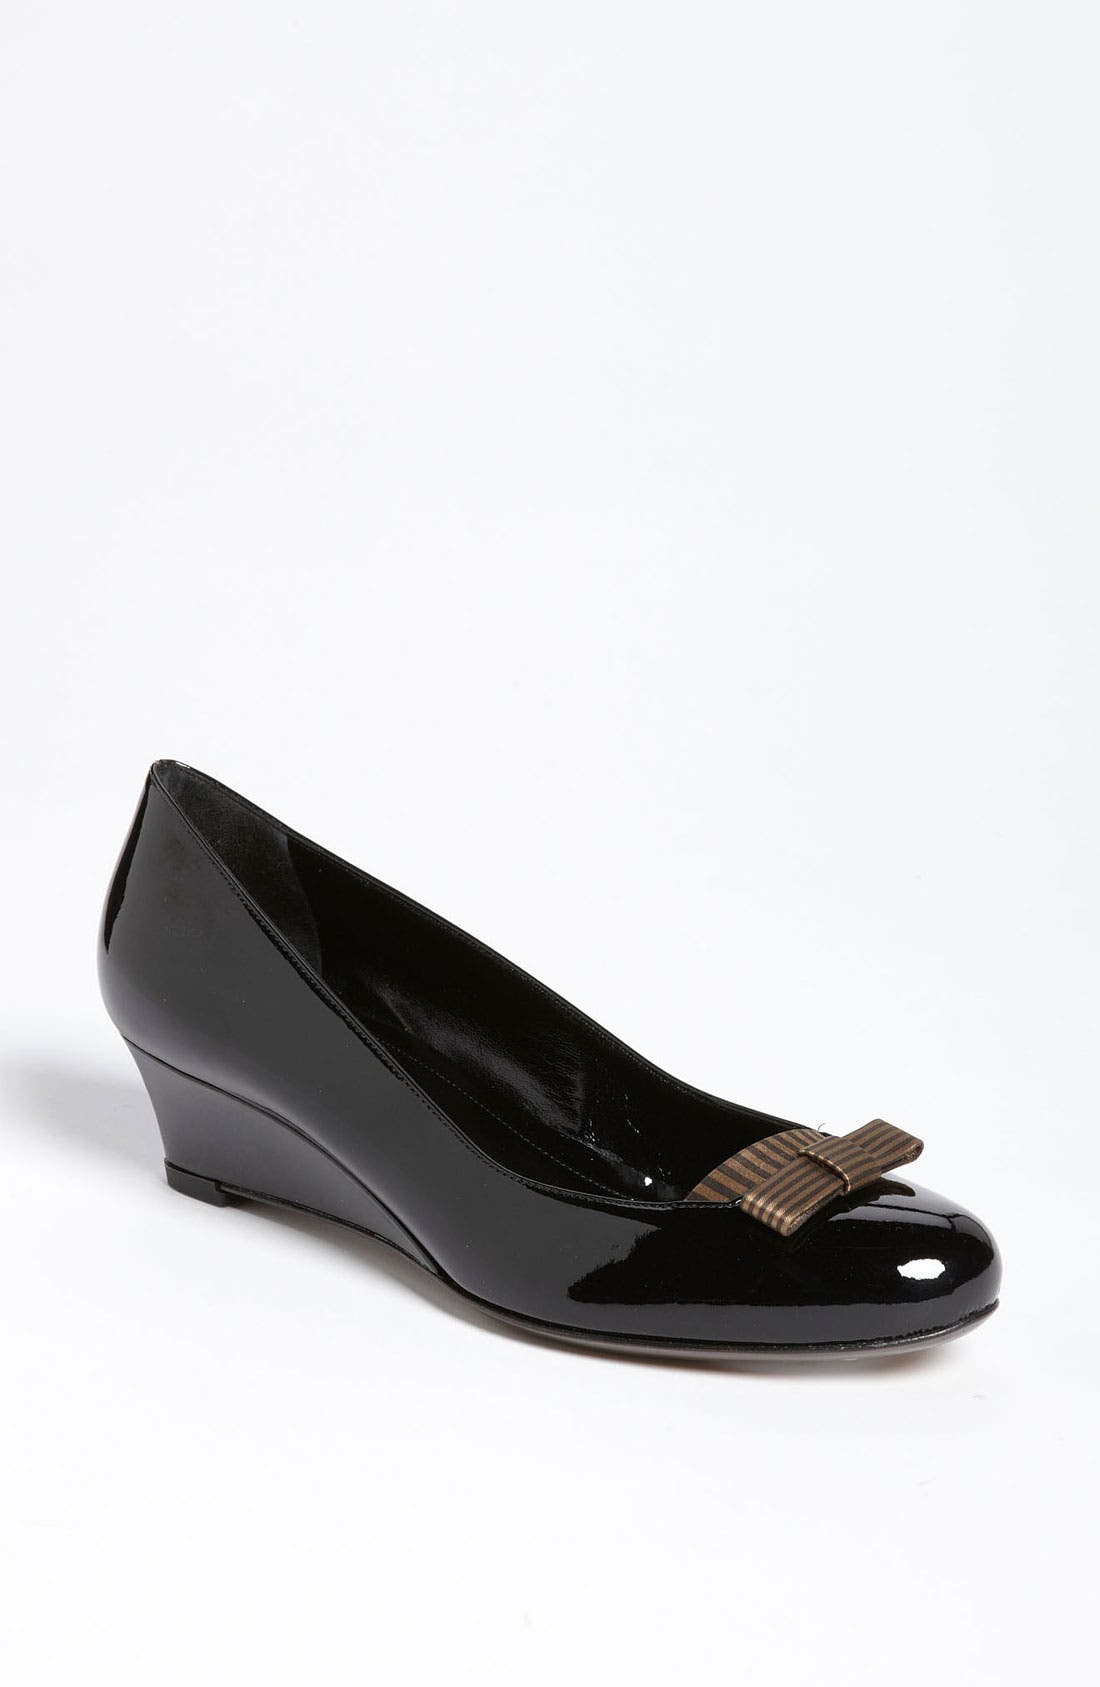 Alternate Image 1 Selected - Fendi 'Charleston' Demi Wedge Pump